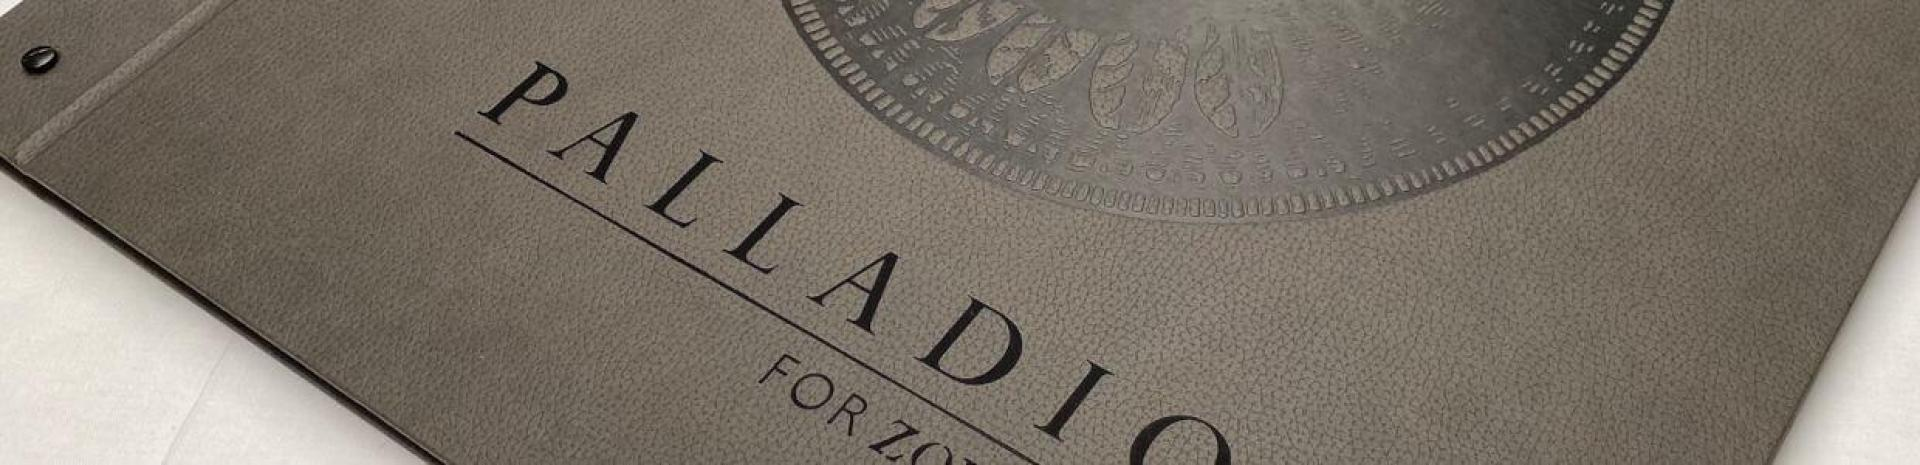 A Review of the Palladio Wallpaper Collection from Zoffany